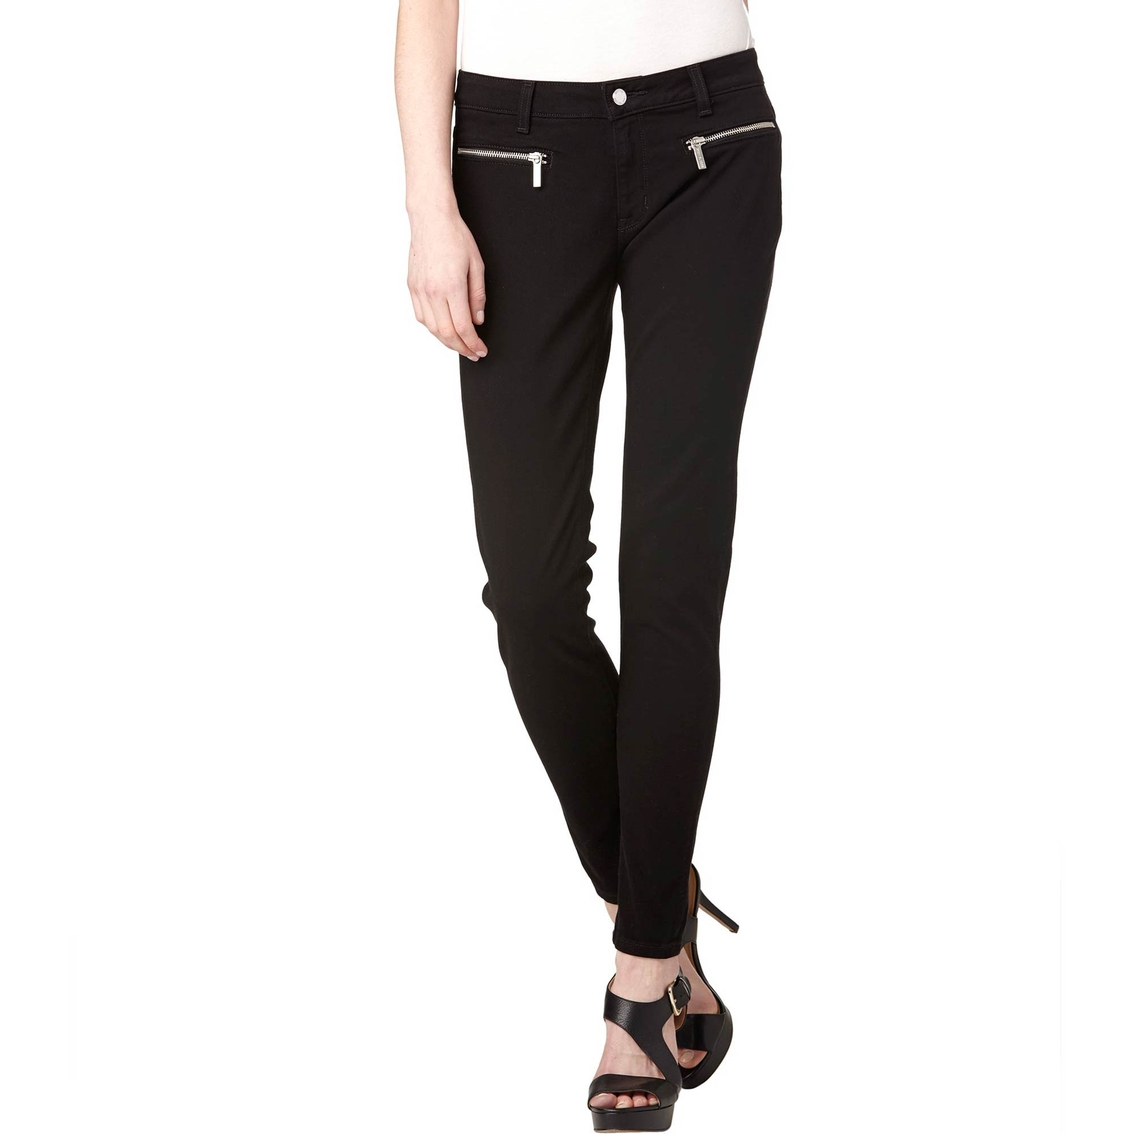 fa068a6b011d Michael Kors Izzy Skinny Jeans | Apparel | Shop The Exchange